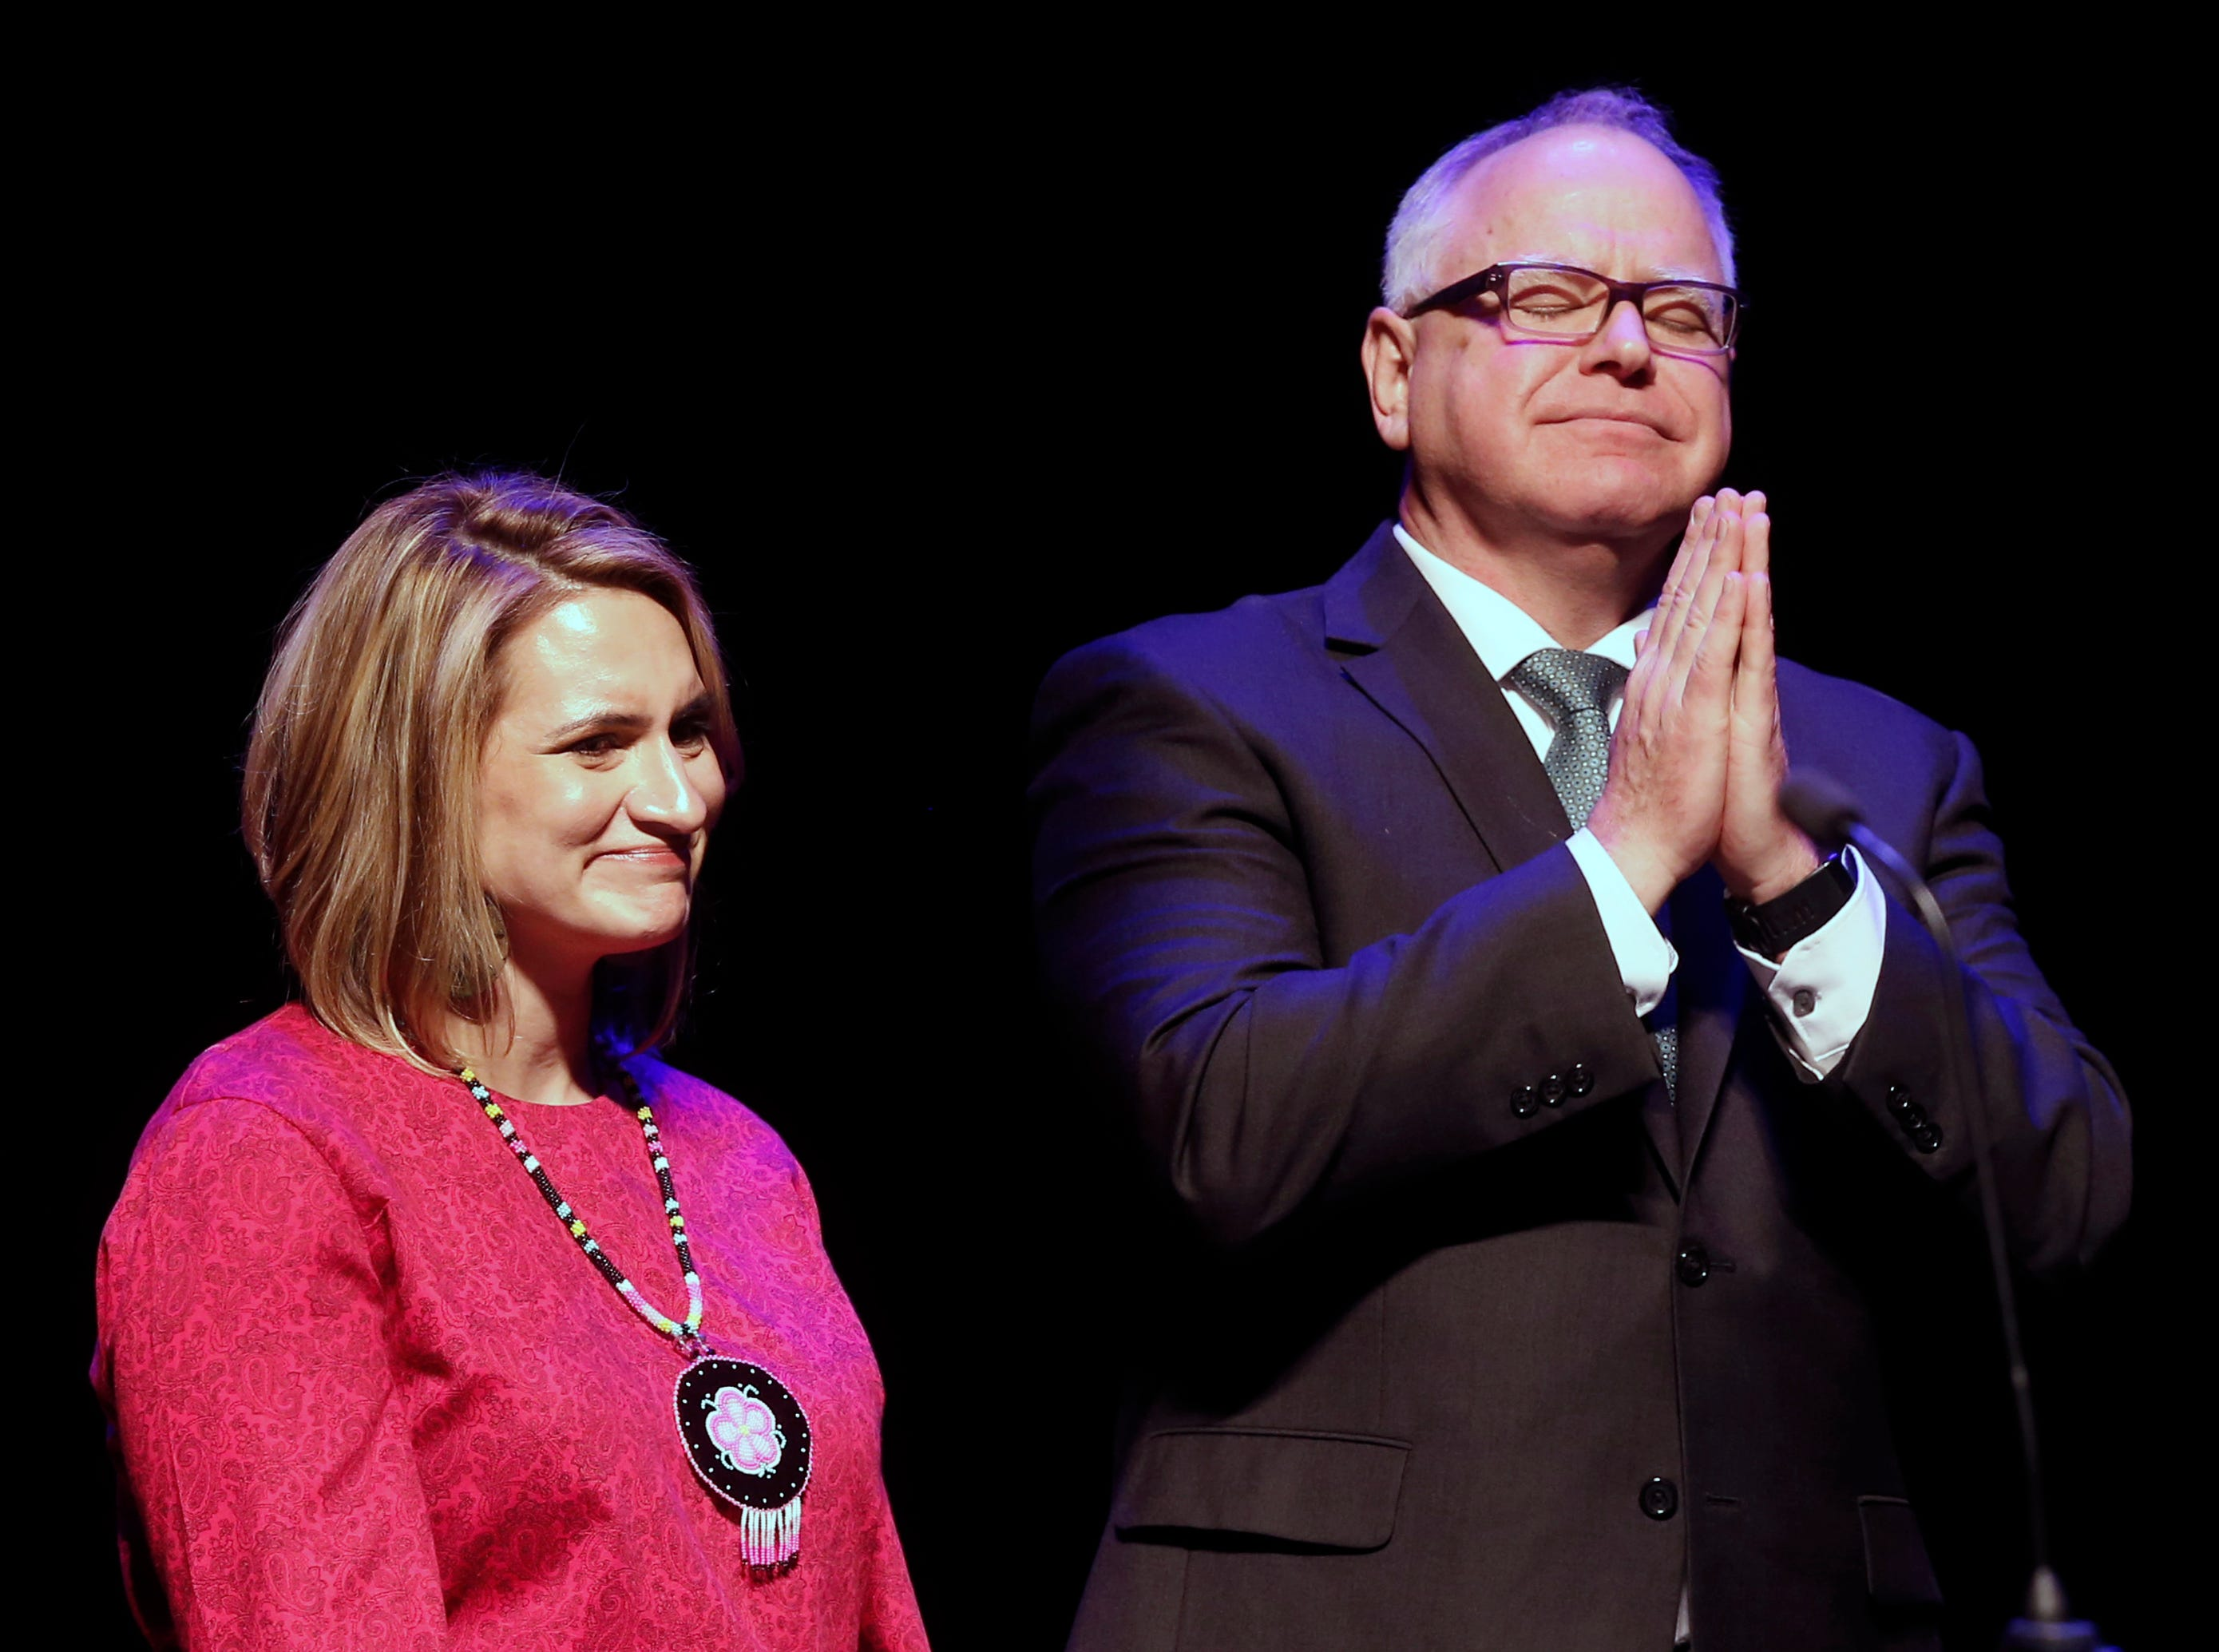 New Minnesota Governor Tim Walz acknowledges the crowd following his inaugural address after he and Lt. Gov. Peggy Flanagan were sworn in Monday, Jan. 7, 2019, in St. Paul, Minn. (AP Photo/Jim Mone)